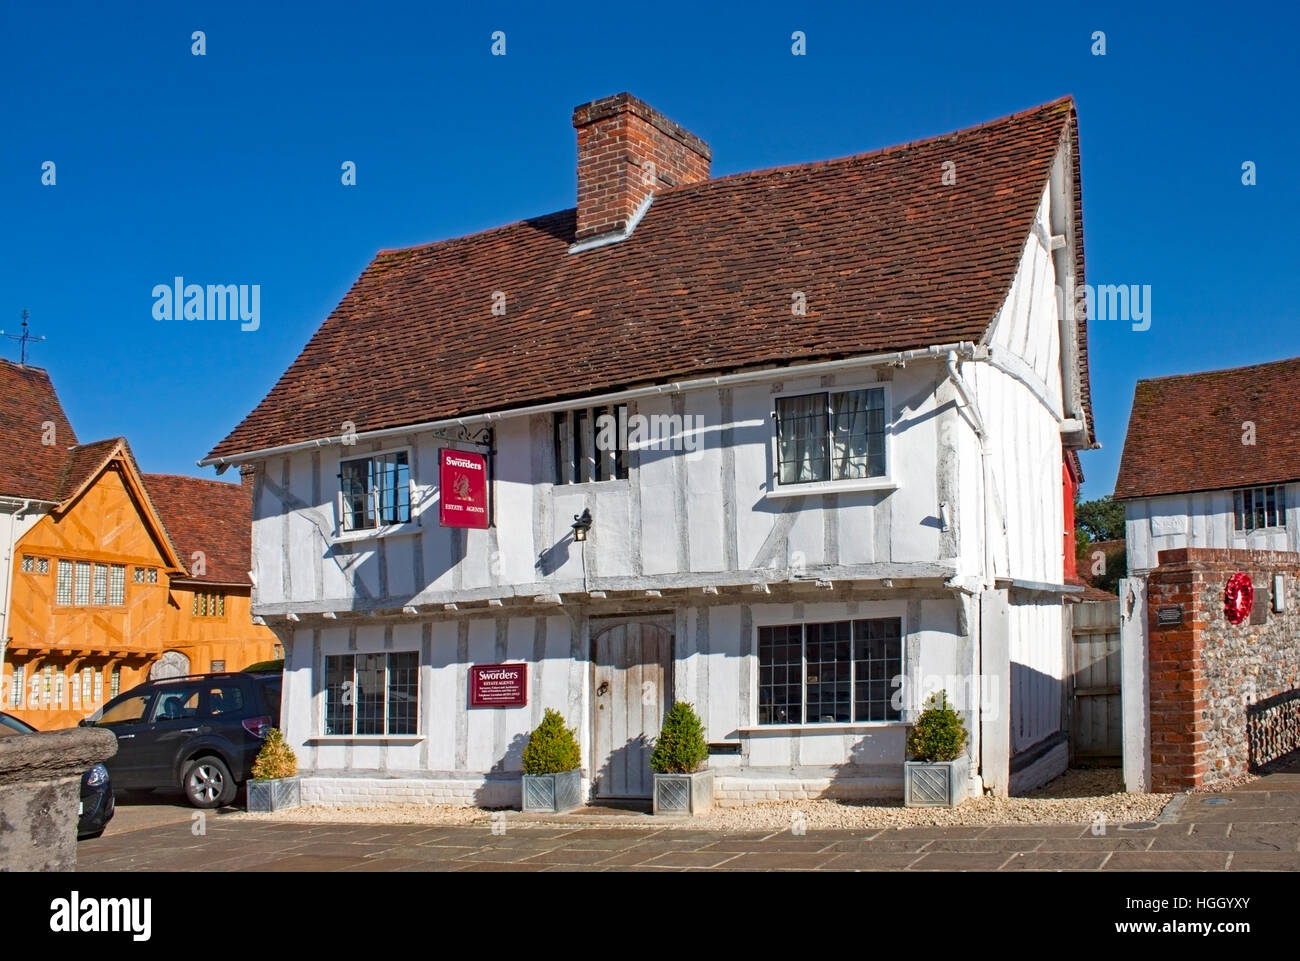 A half-timbered medieval house in the market square, now an estate agent's office. Lavenham, Suffolk ,England - Stock Image